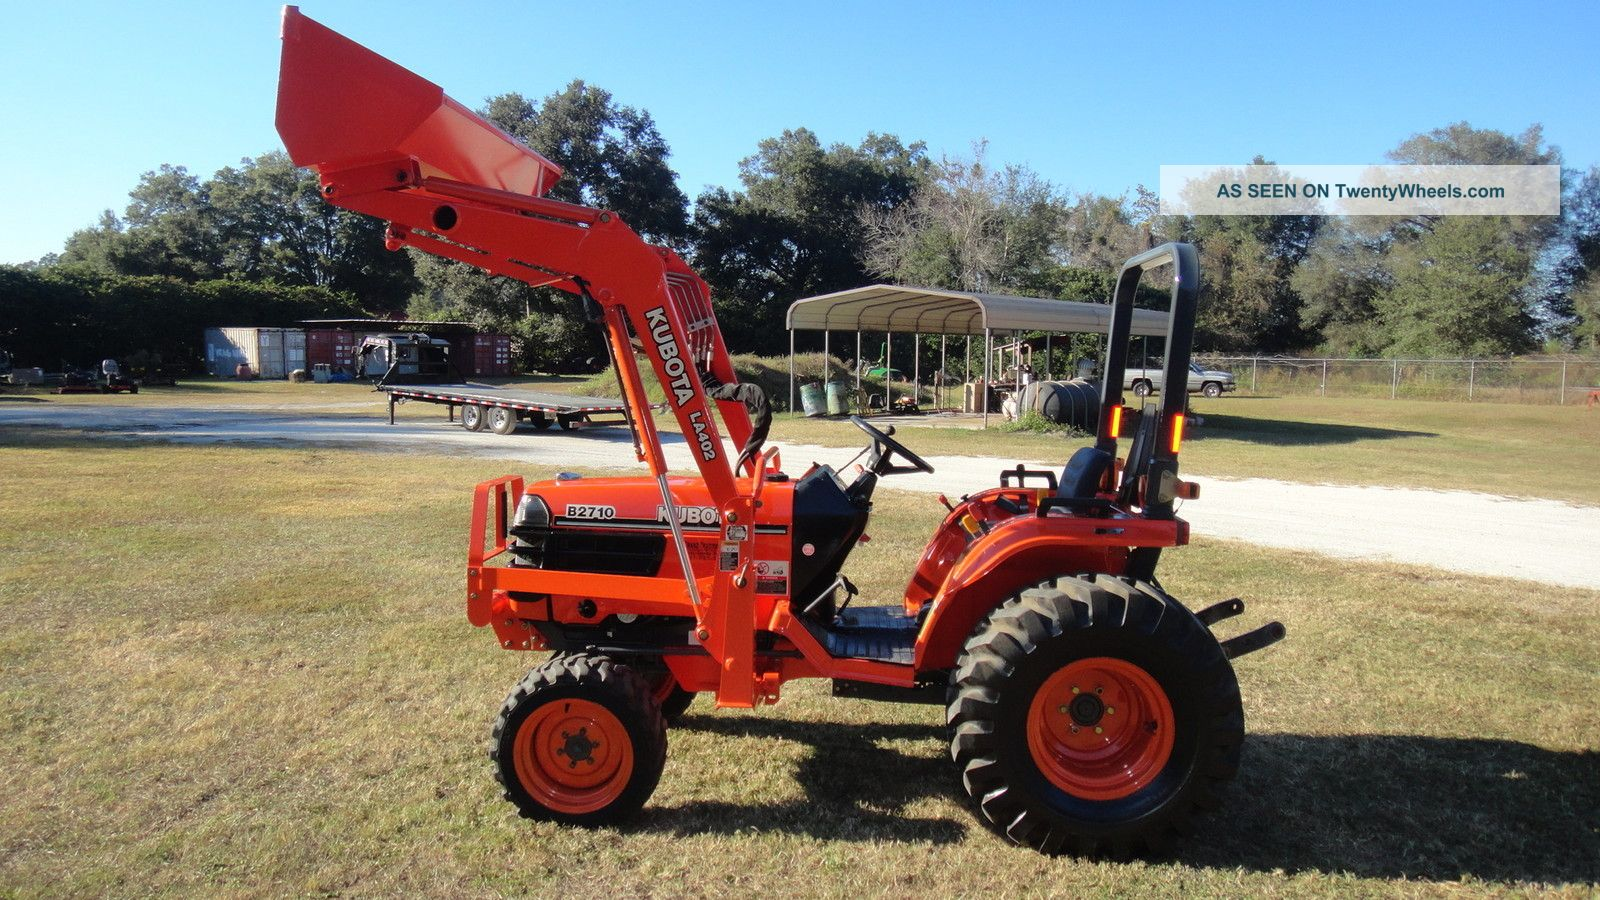 Kubota B2920 Farm Tractor Tractors Wiring Diagram B26 Tlb B2710 4x4 With Loader Hst Very Low Hours Photo